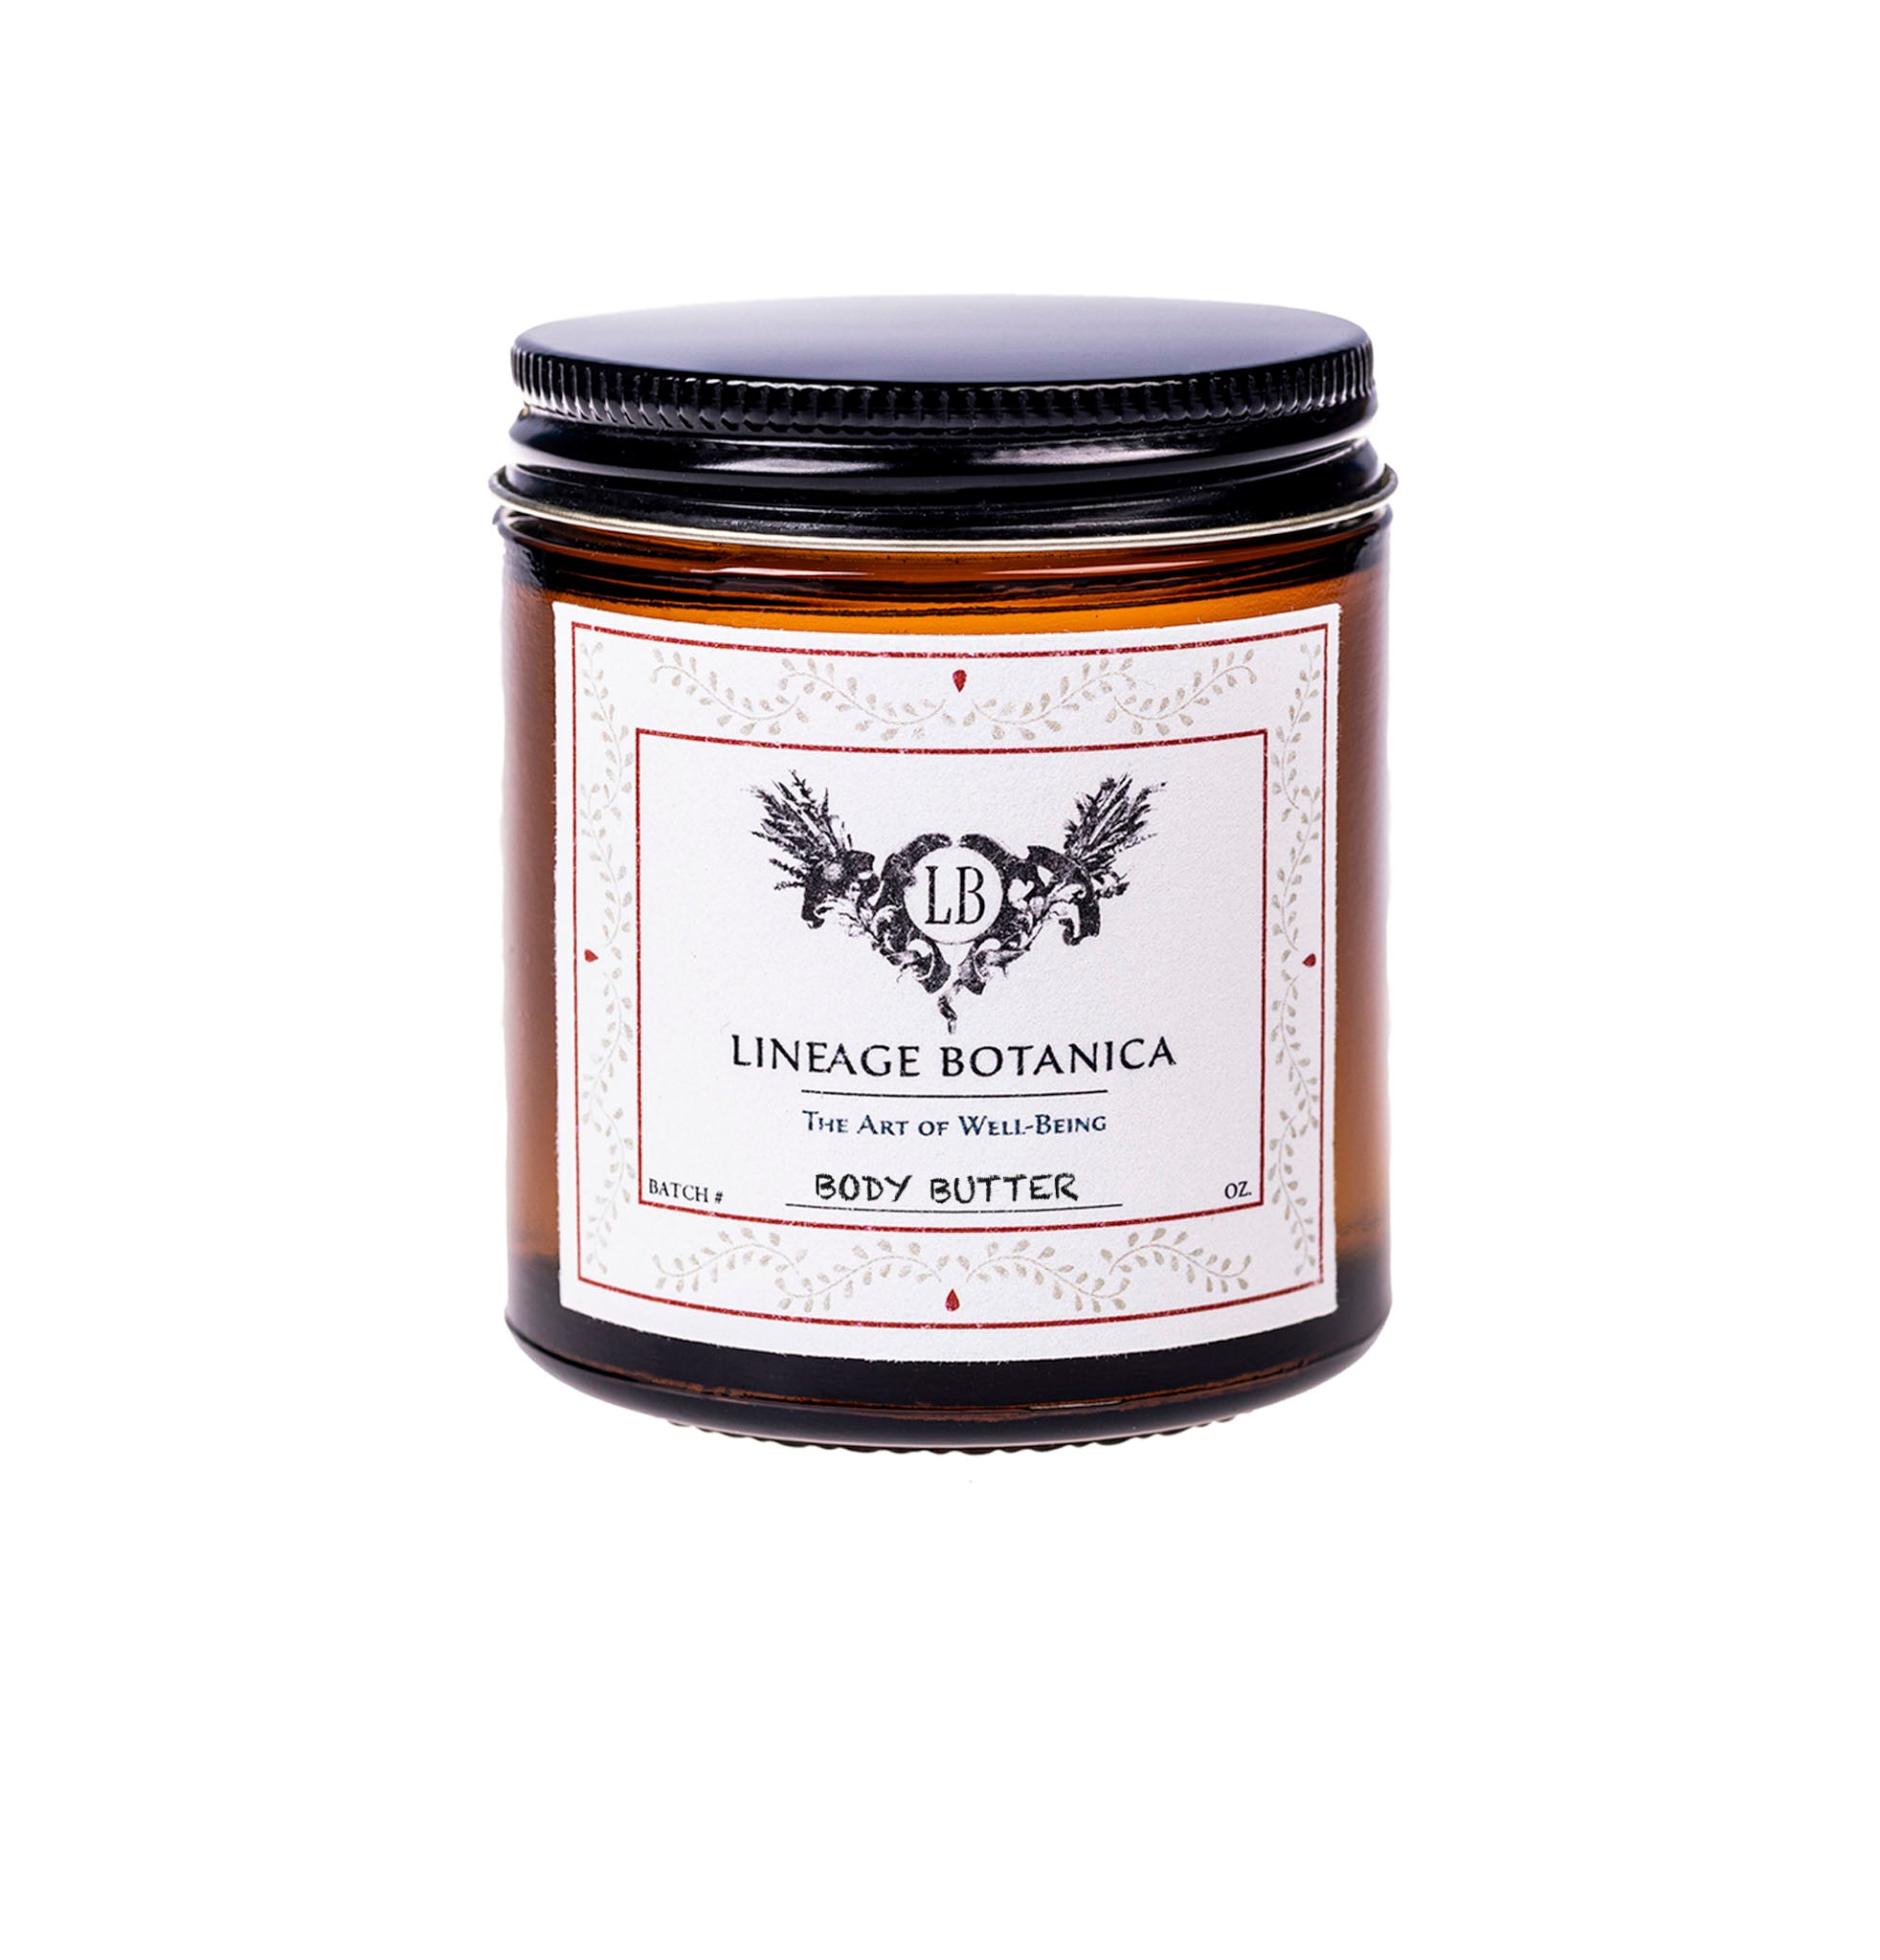 Body Butter: Vegan - Organic A3015